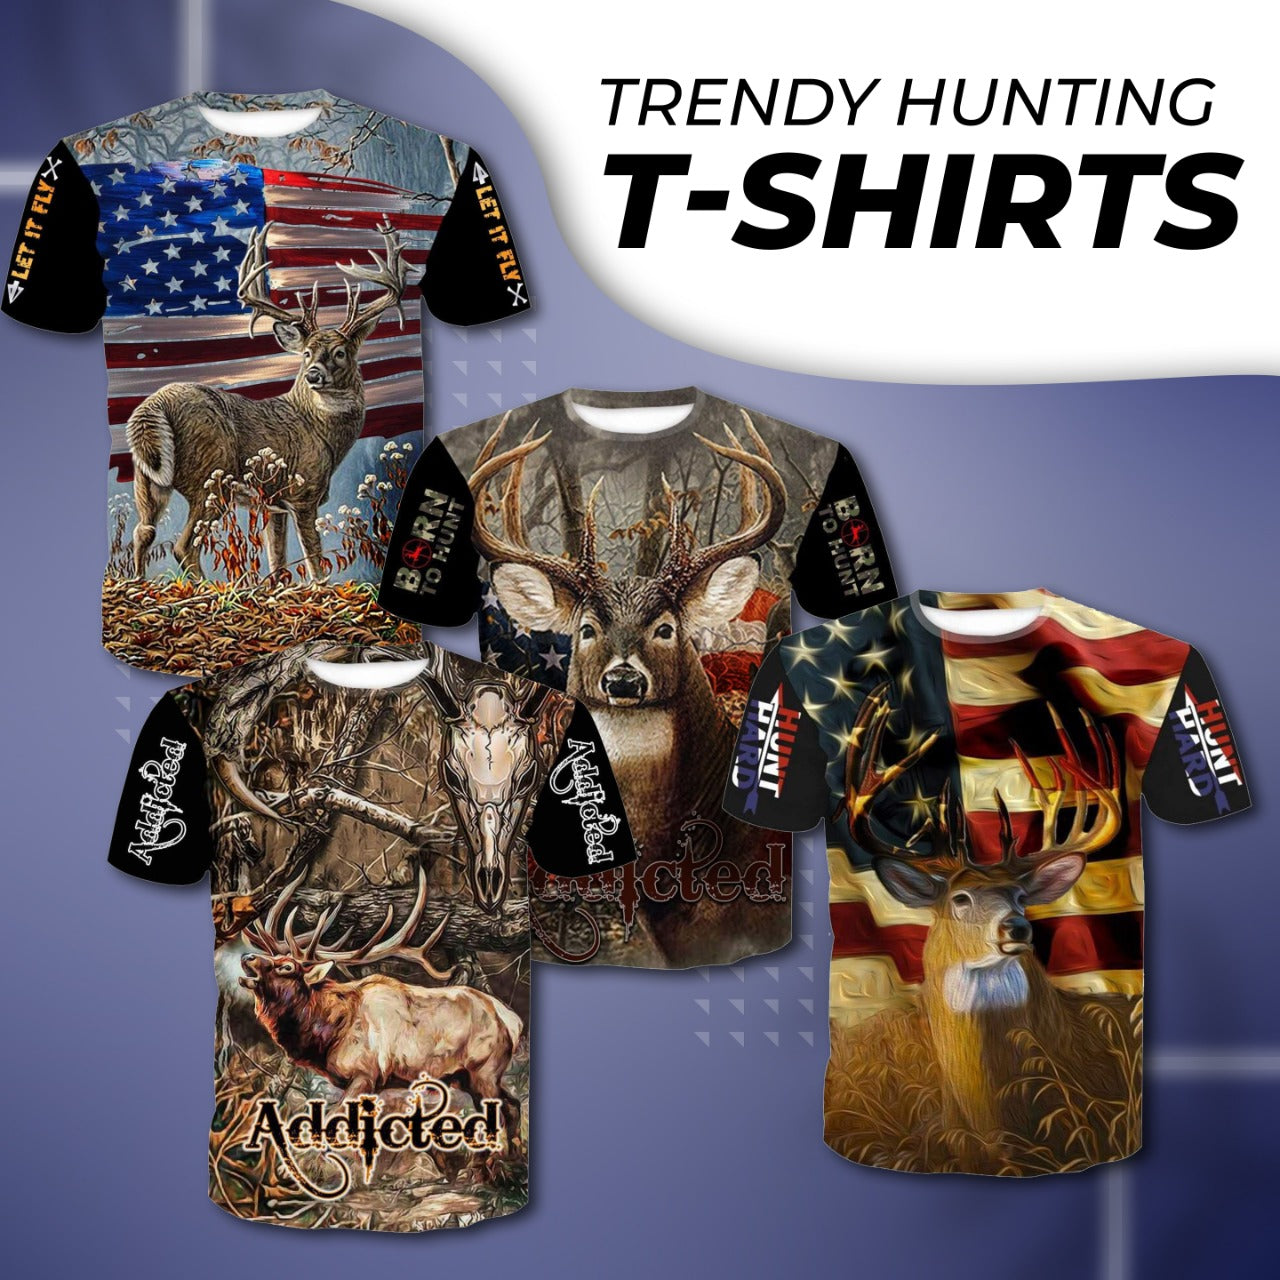 Explore Trendy Hunting T-shirts for Men